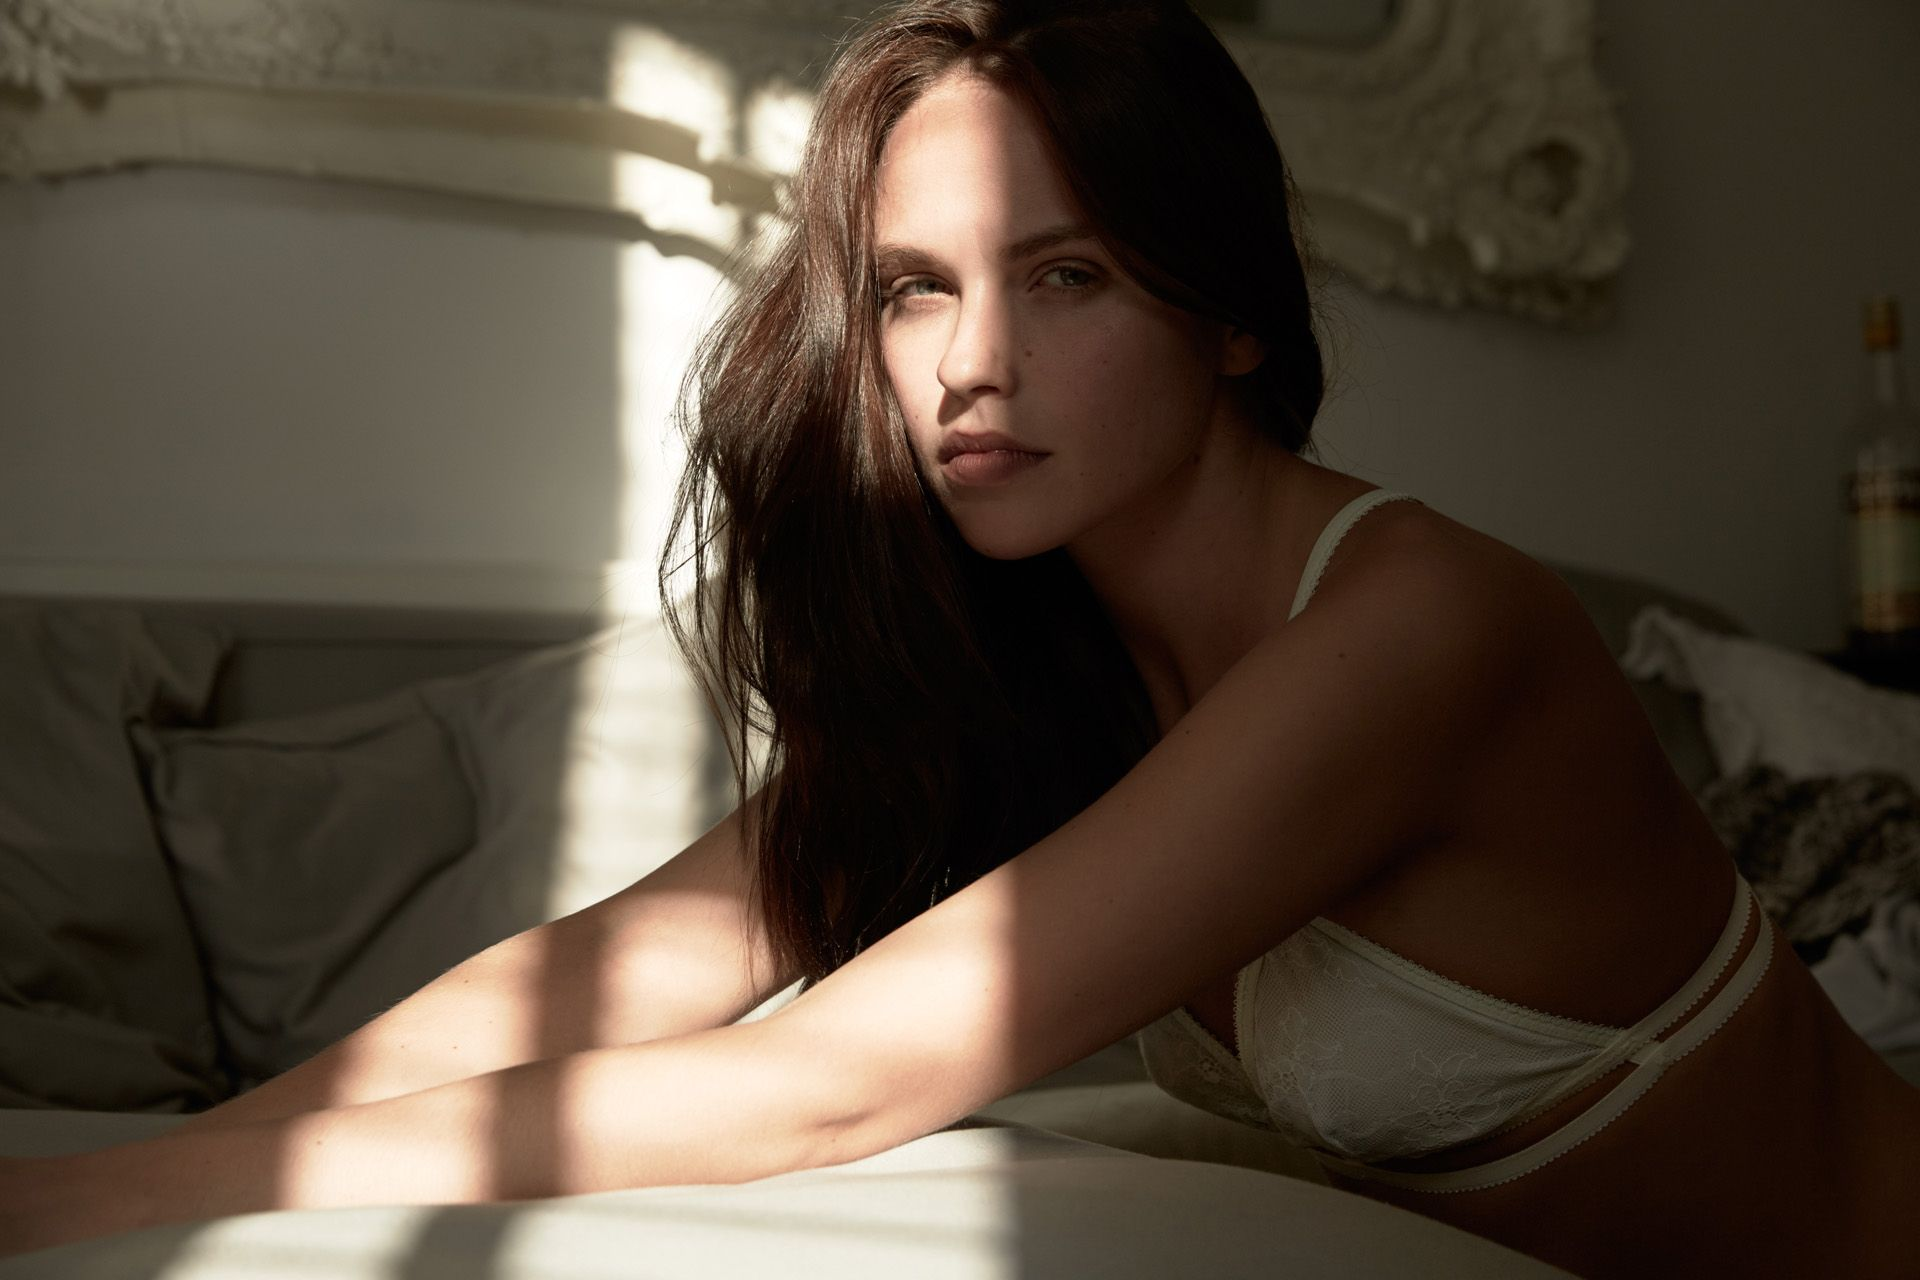 model Kat wearing Iris London lingerie sitting between bed and wall in sunlight by Maxyme G Delisle